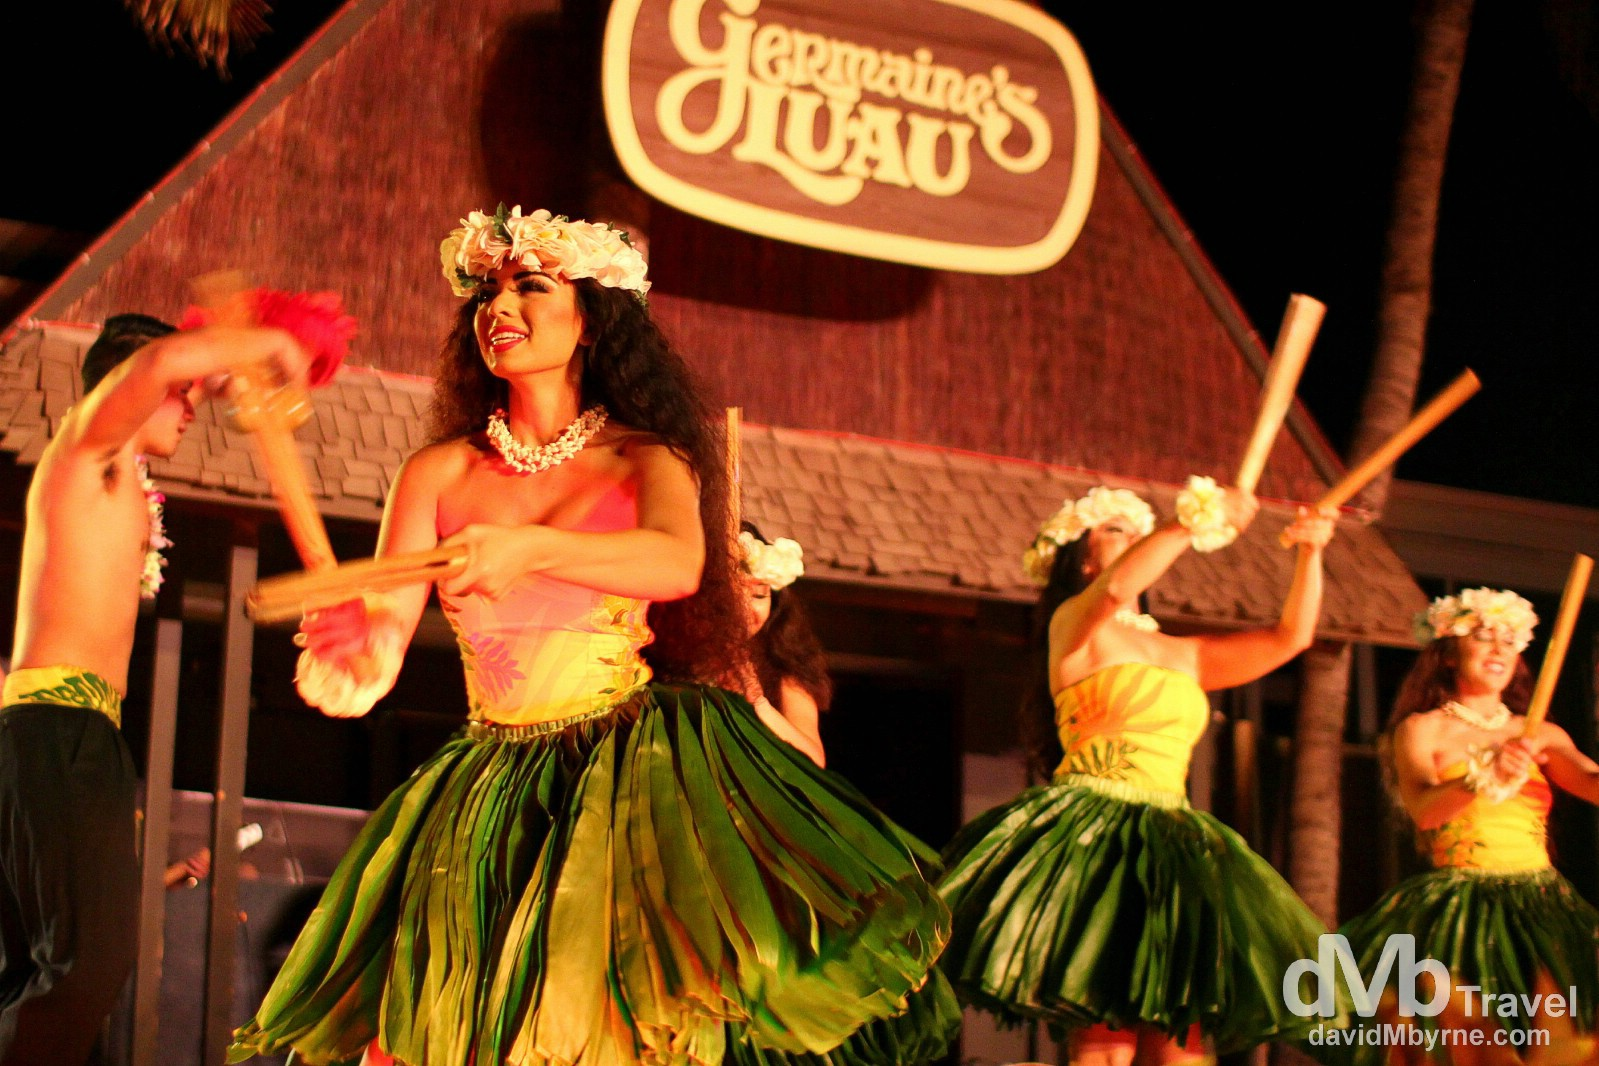 Dancers at Germaine's Luau, Oahu, Hawaii. February 27th 2013.